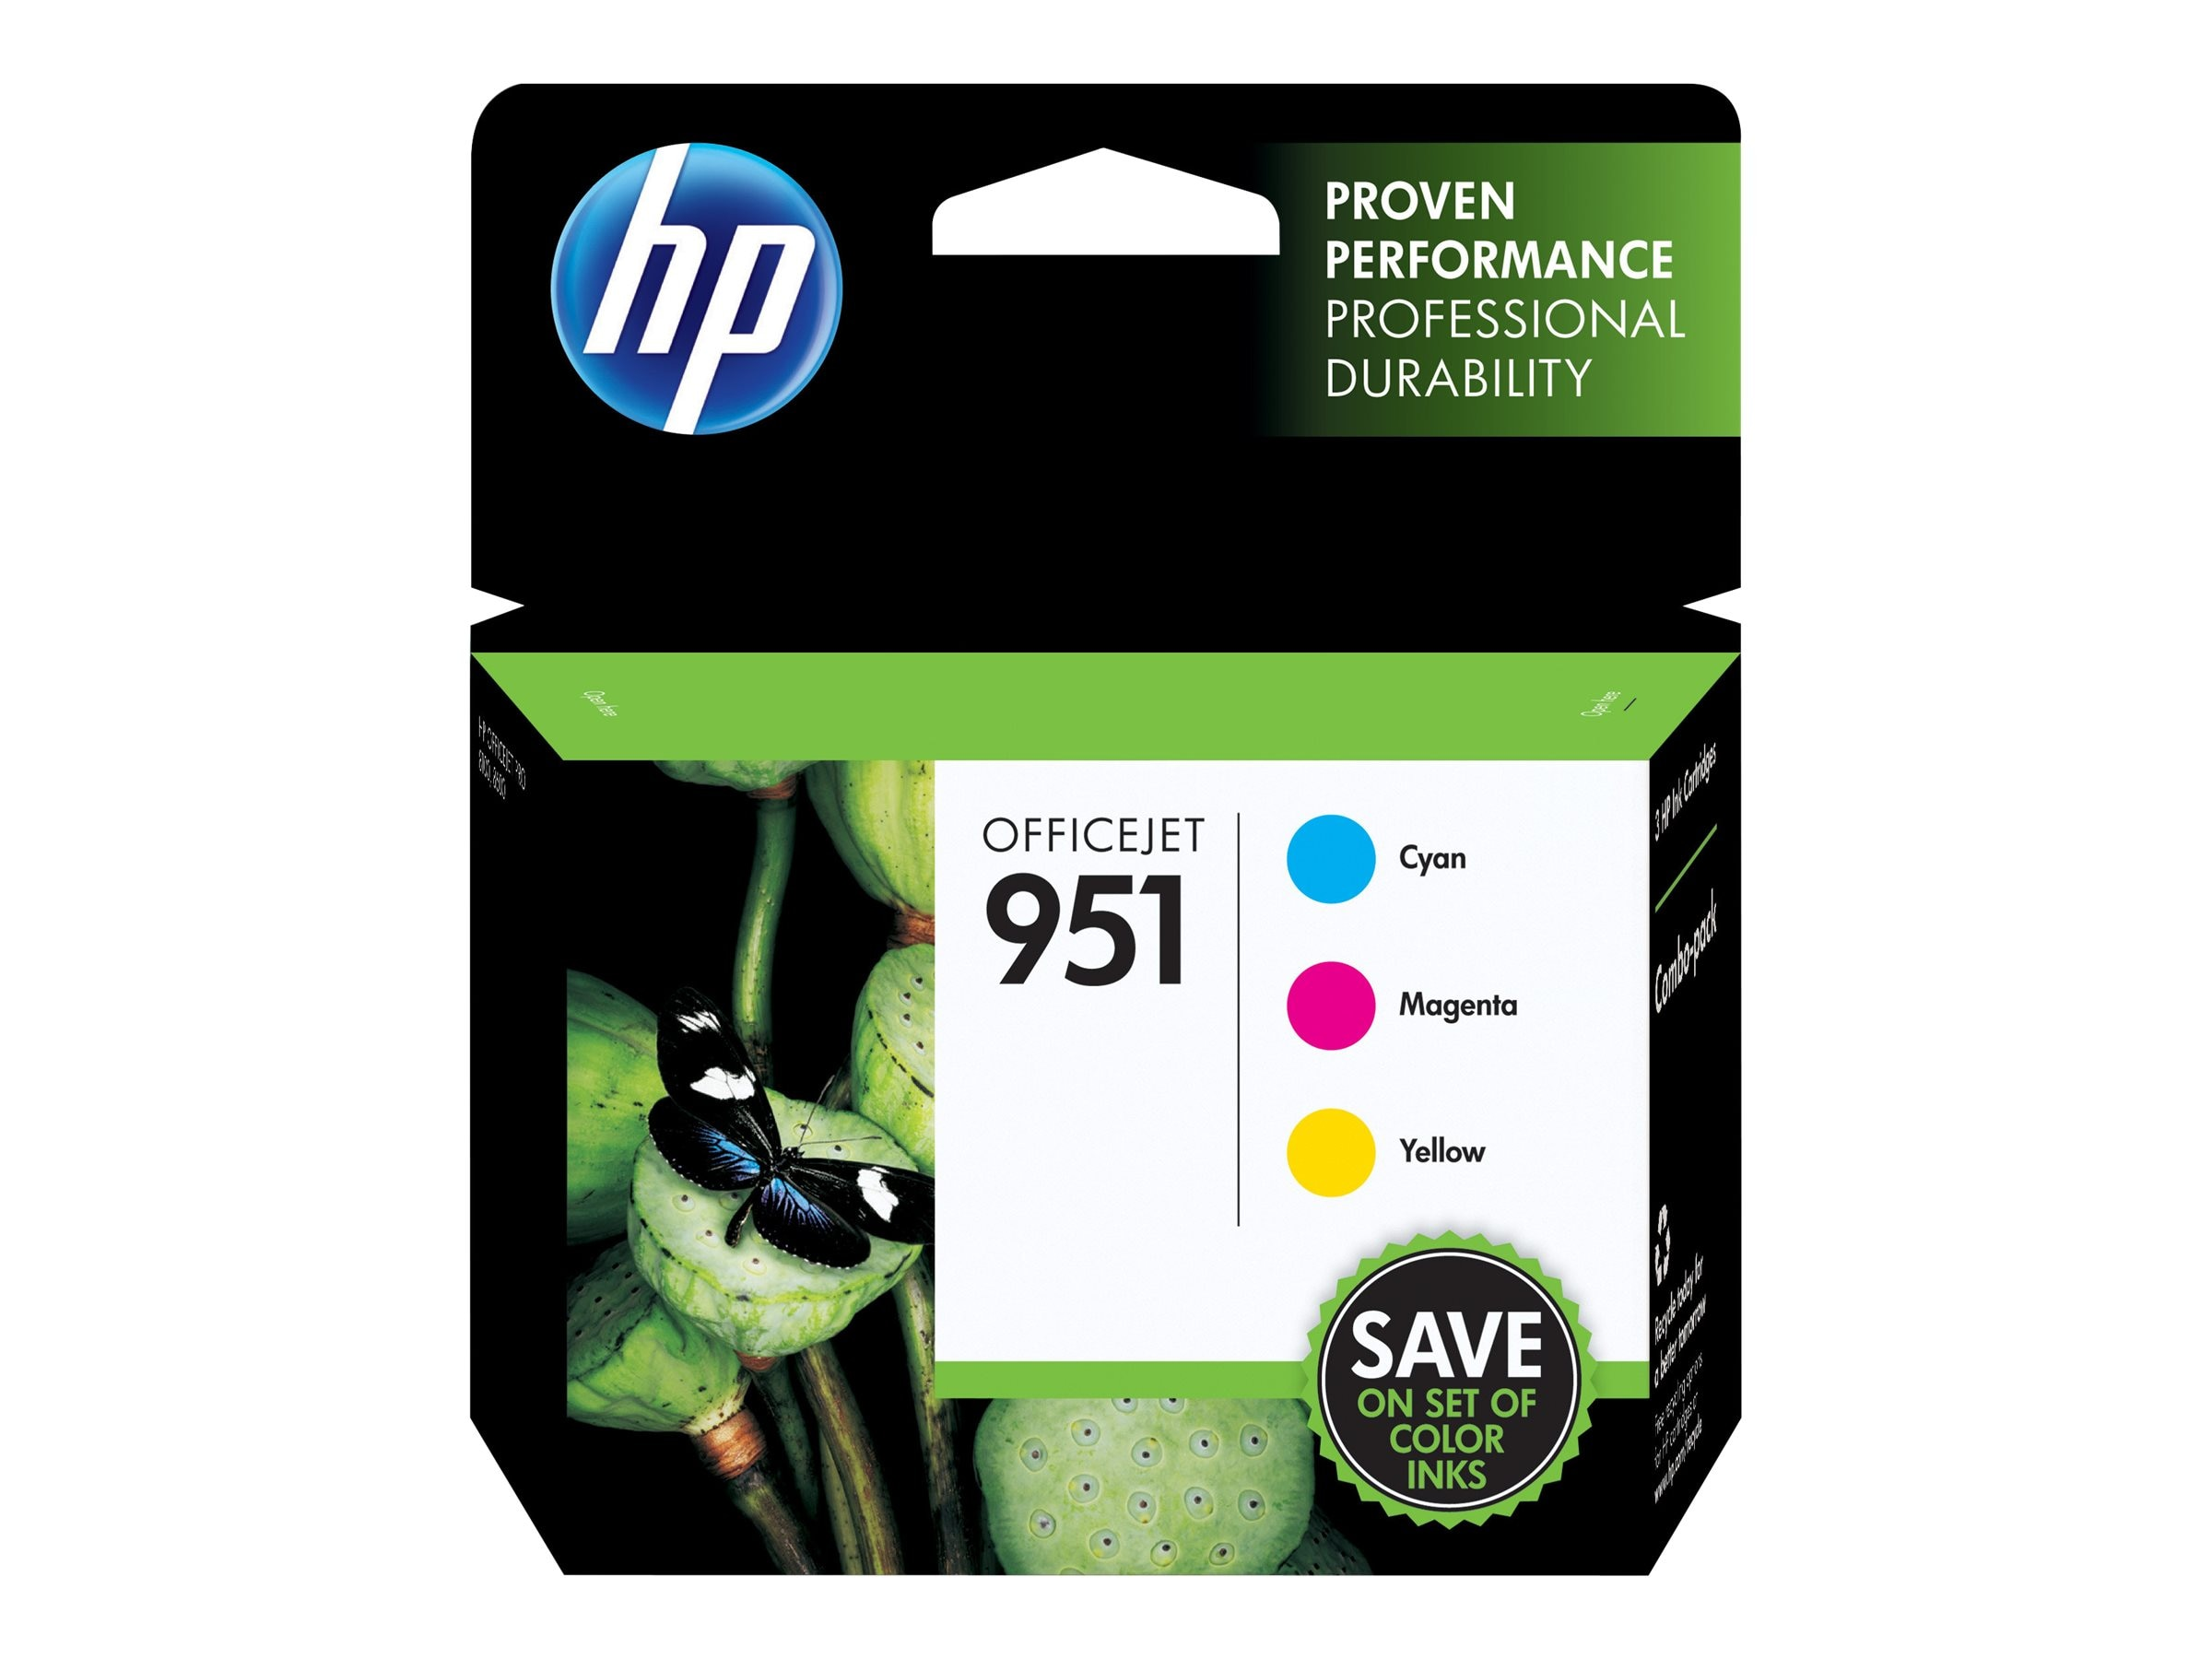 HP Inc. CR314FN#140 Image 2